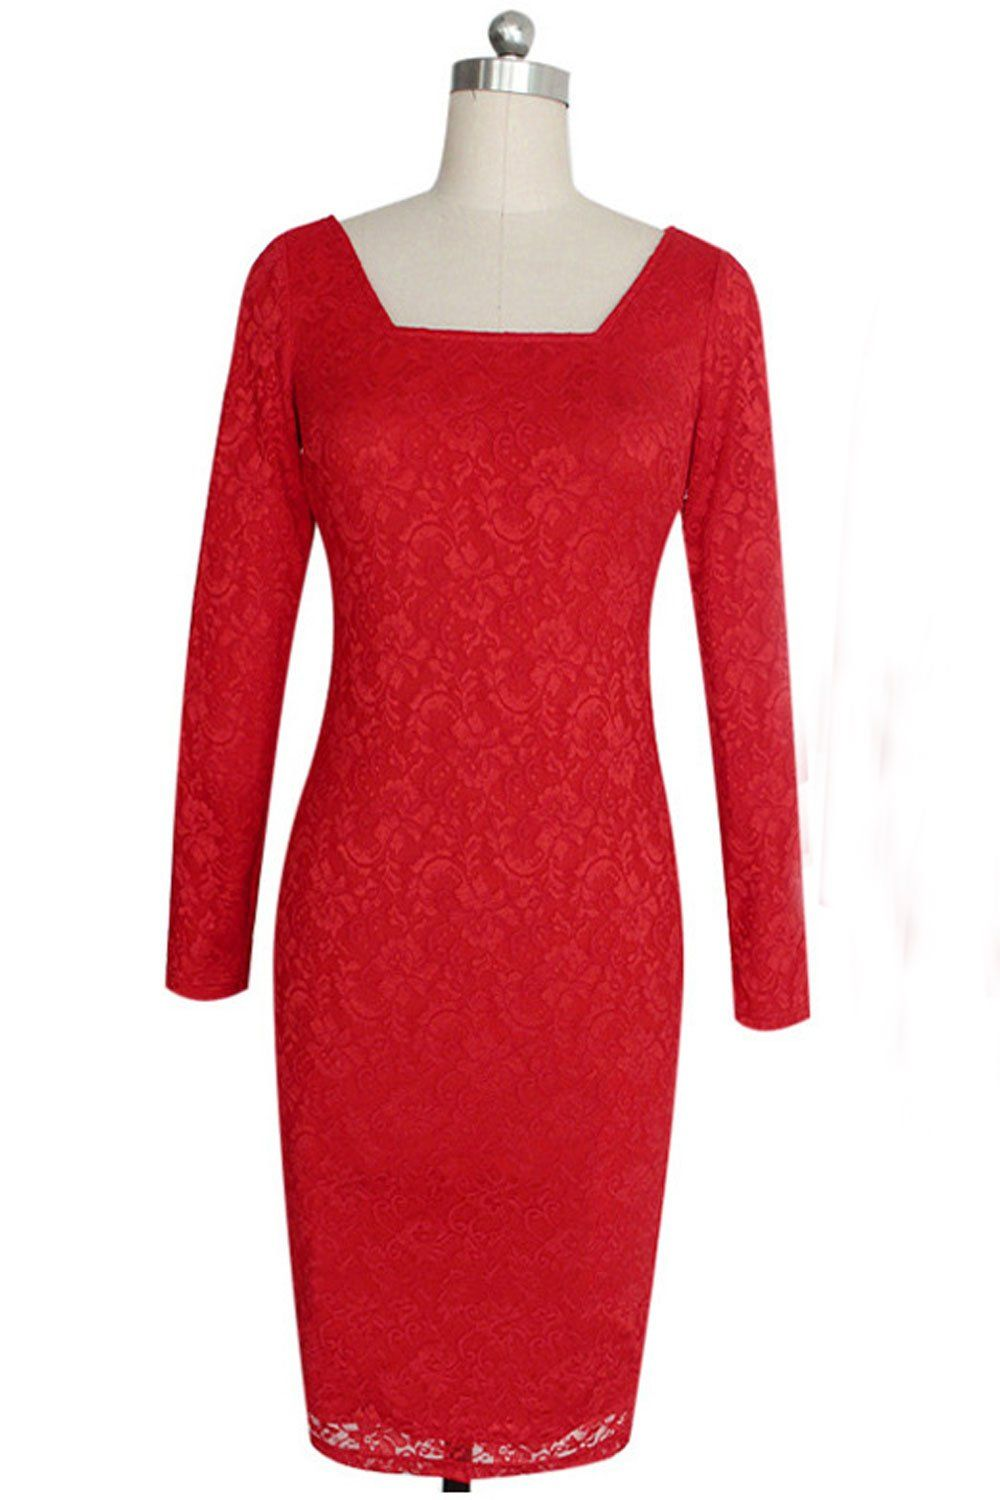 113a5551550 Unomatch Women Square Neck Slim Pencil Wedding Party Body Fitted Dress Red  Large Red     Details can be found by clicking on the image.